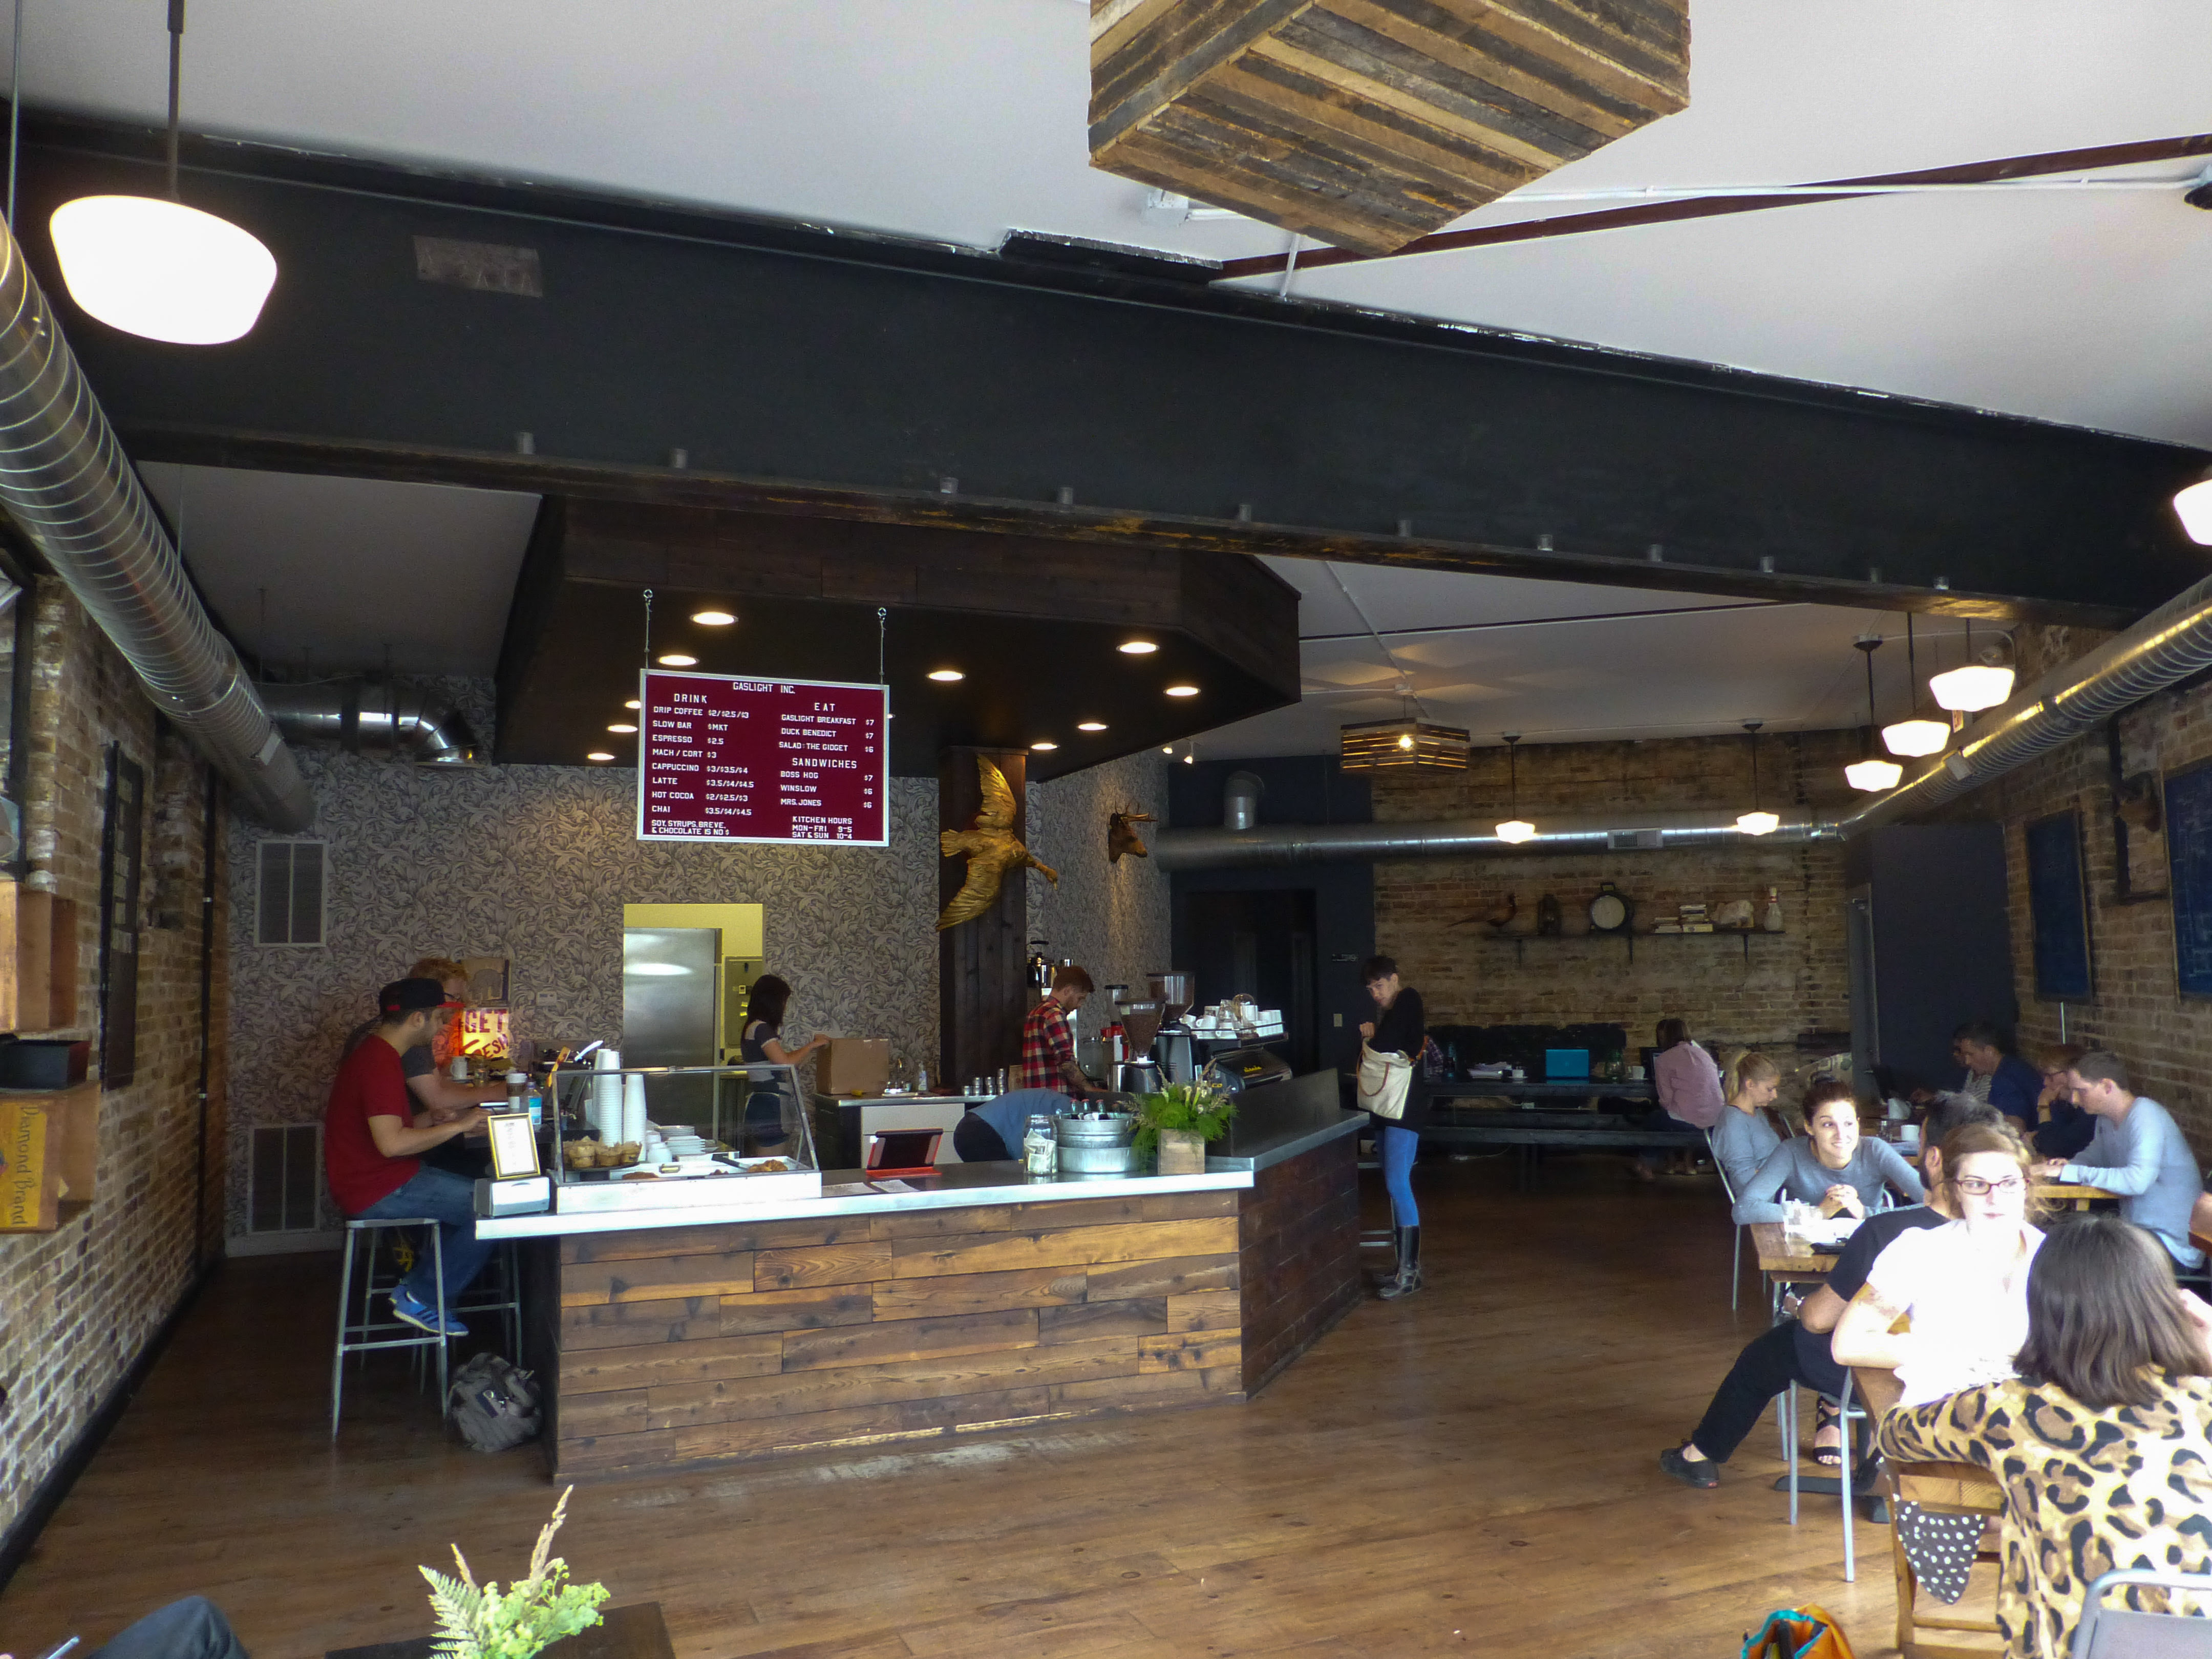 40 Hours of Chicago Coffee Pt. 1: Caffe Streets & Gaslight Coffee Roasters